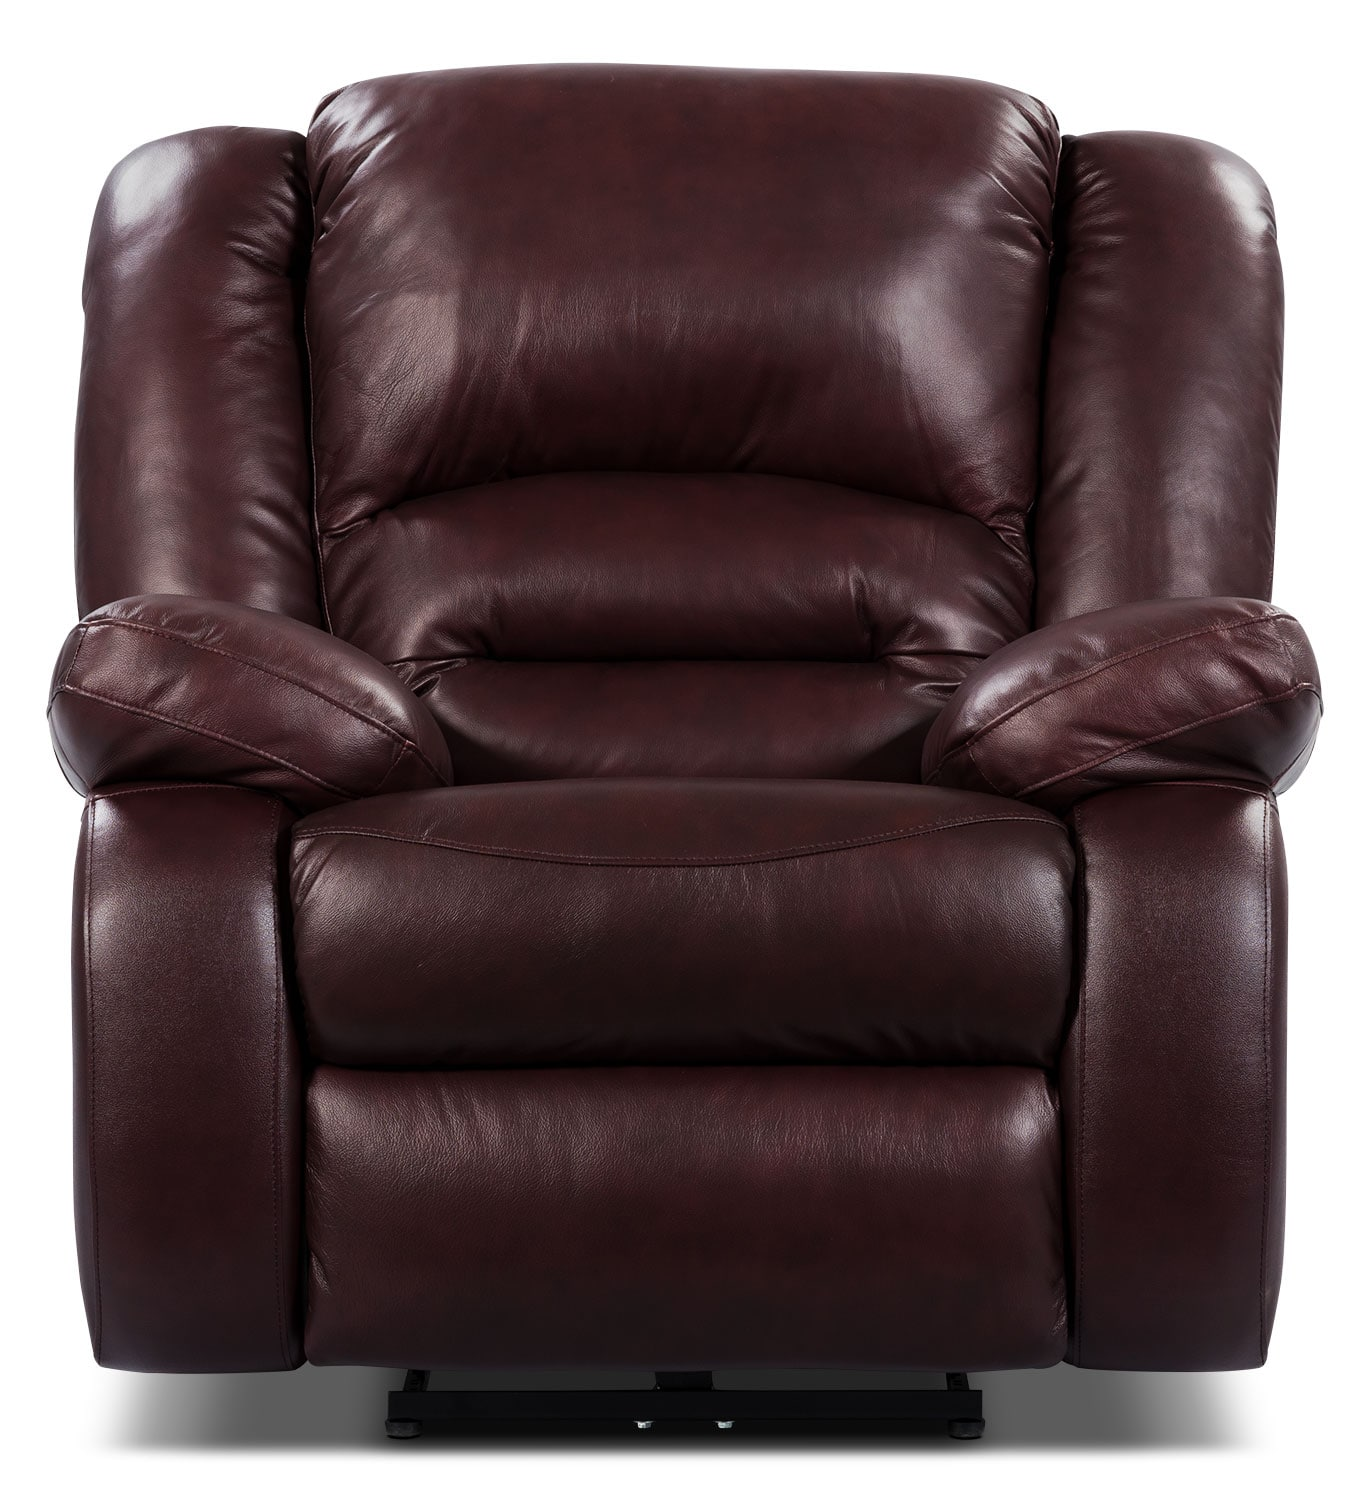 Living Room Furniture - Toreno Burgundy Genuine Leather Power Recliner